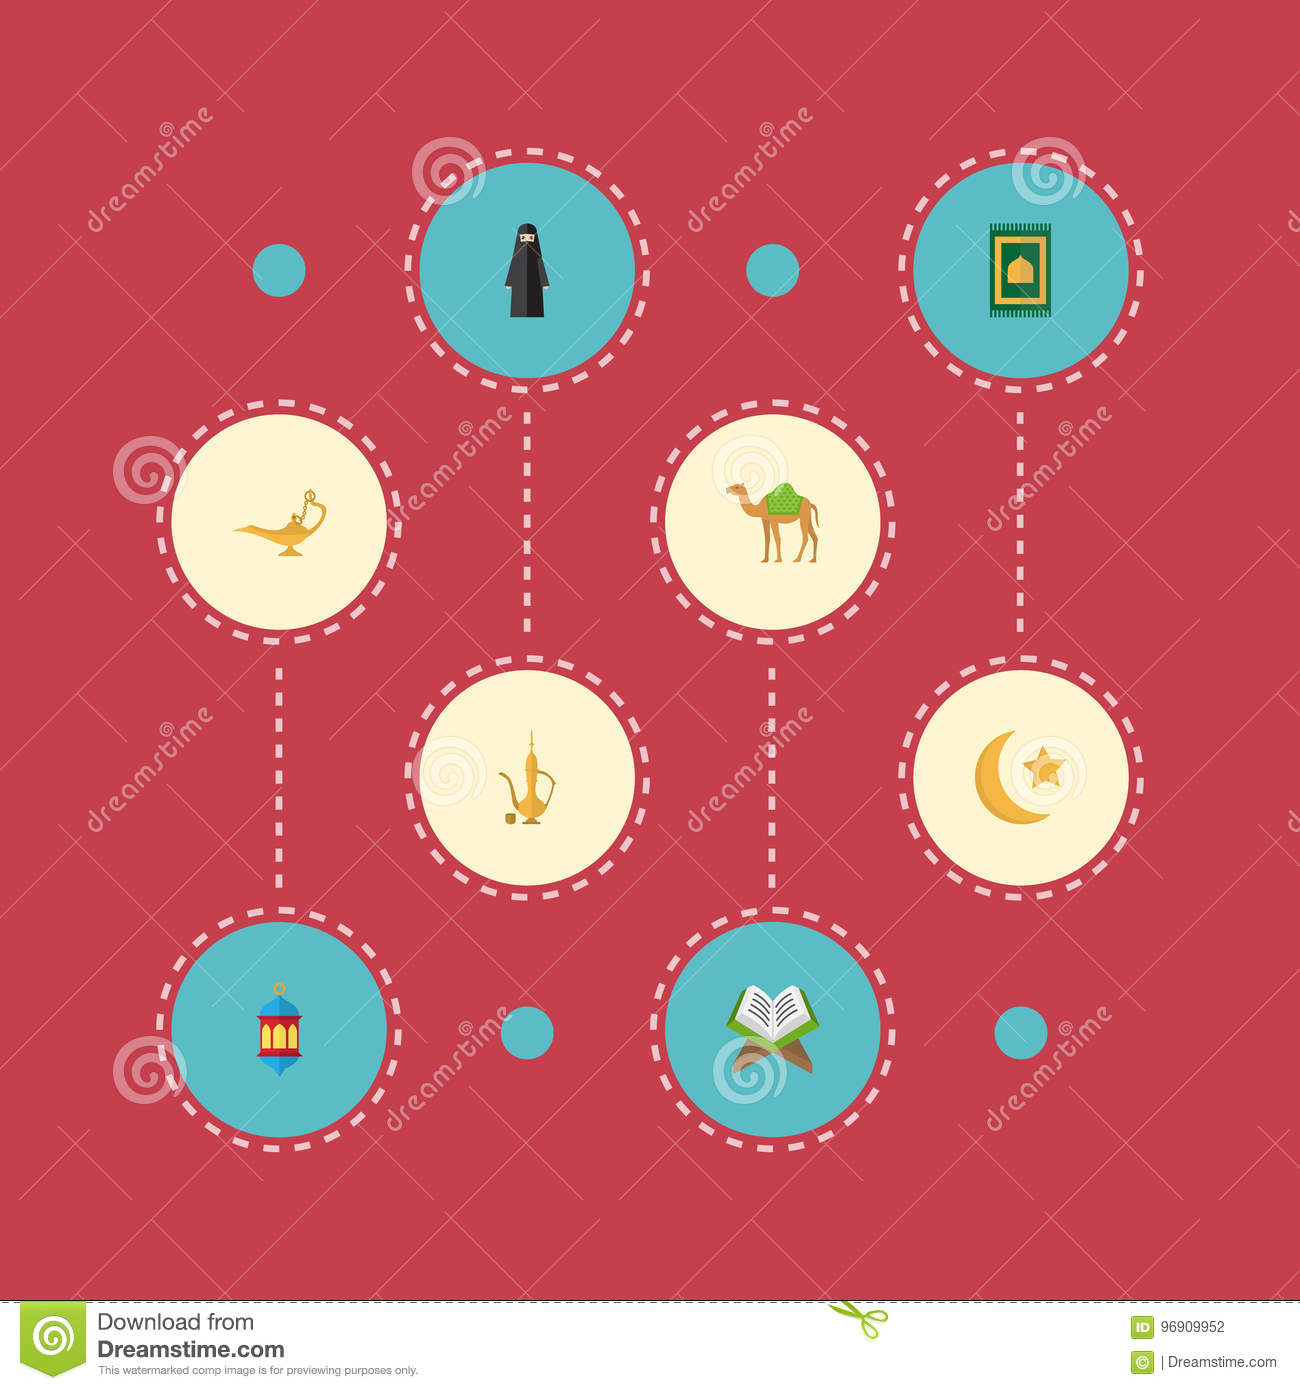 Flat Icons Prayer Carpet, Dromedary, Muslim Woman And Other Vector